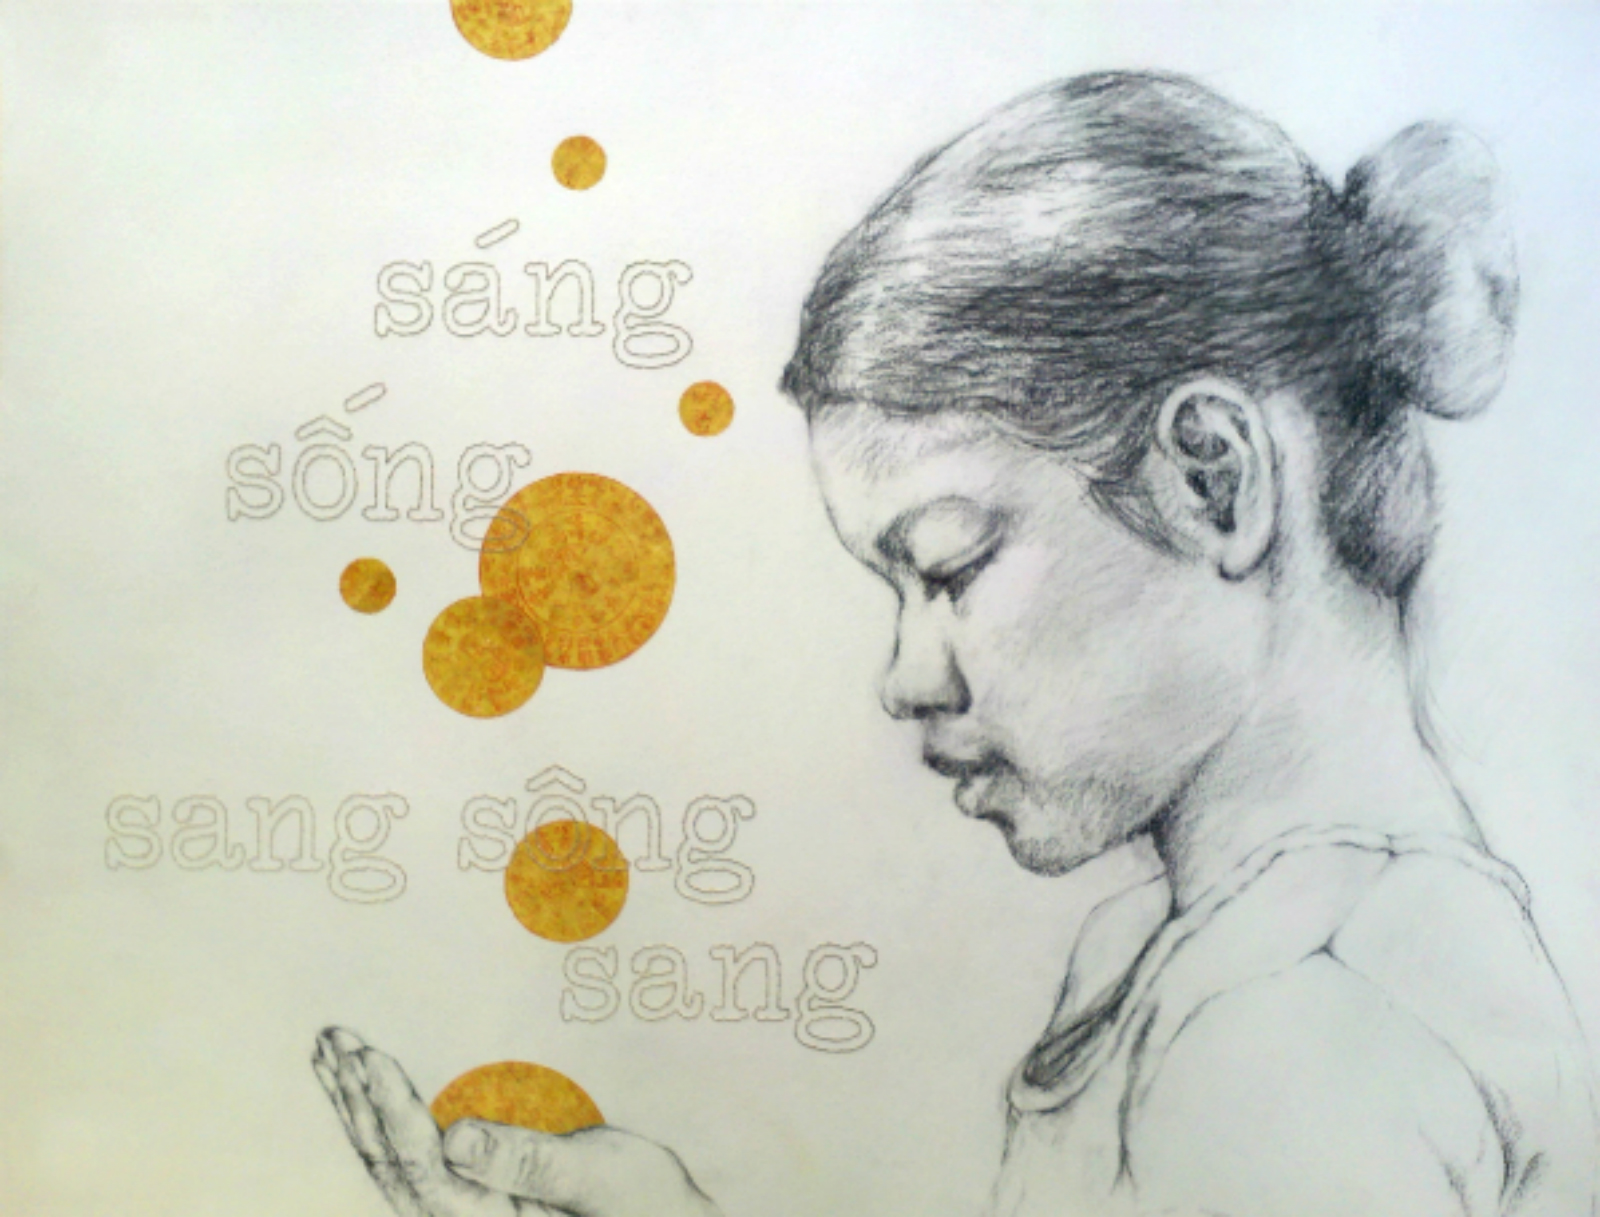 "Sáng, Sóng, Sang Sông, Sang    (To Lighten, to Live, to Cross a River, to Arrive) , 2013, Charcoal, joss paper and hand embroidery on paper, 19 x 24""  This drawing of my mother observes the faith by which my mother lives her life, and the persistence by which she presses forward in this life. She has lived through times of wealth and times of poverty, times of plenty and times of hunger, and like all of us, has persevered through heartache which undoubtedly leads to those cherished moments of healing. The Vietnamese hand-stitched text reads, ""sáng, sóng, sang sông, sang"", which translates to ""to lighten, to live, to cross a River, to arrive"".  Through her life, my mother has taught me that by seeing the world through a lens of hope, we can continue appreciating Life in its entirety regardless of circumstance. And although these storms can devastate and seemingly destroy, we know their worth. Whether to test our Will, to help us recognize those who are true in our lives, to teach us important lessons in compassion, or to test our intrinsic strength, these storms will ever reveal to us the worthy reasons for their afflictions upon us.  As nature has proven, our muscles and bones, just as our Spirits, strengthen under this pressure. Together we have learned that if we can just endure and learn to move with their currents, these storms will eventually come to pass, leaving us scarred but wiser, bent but stronger."